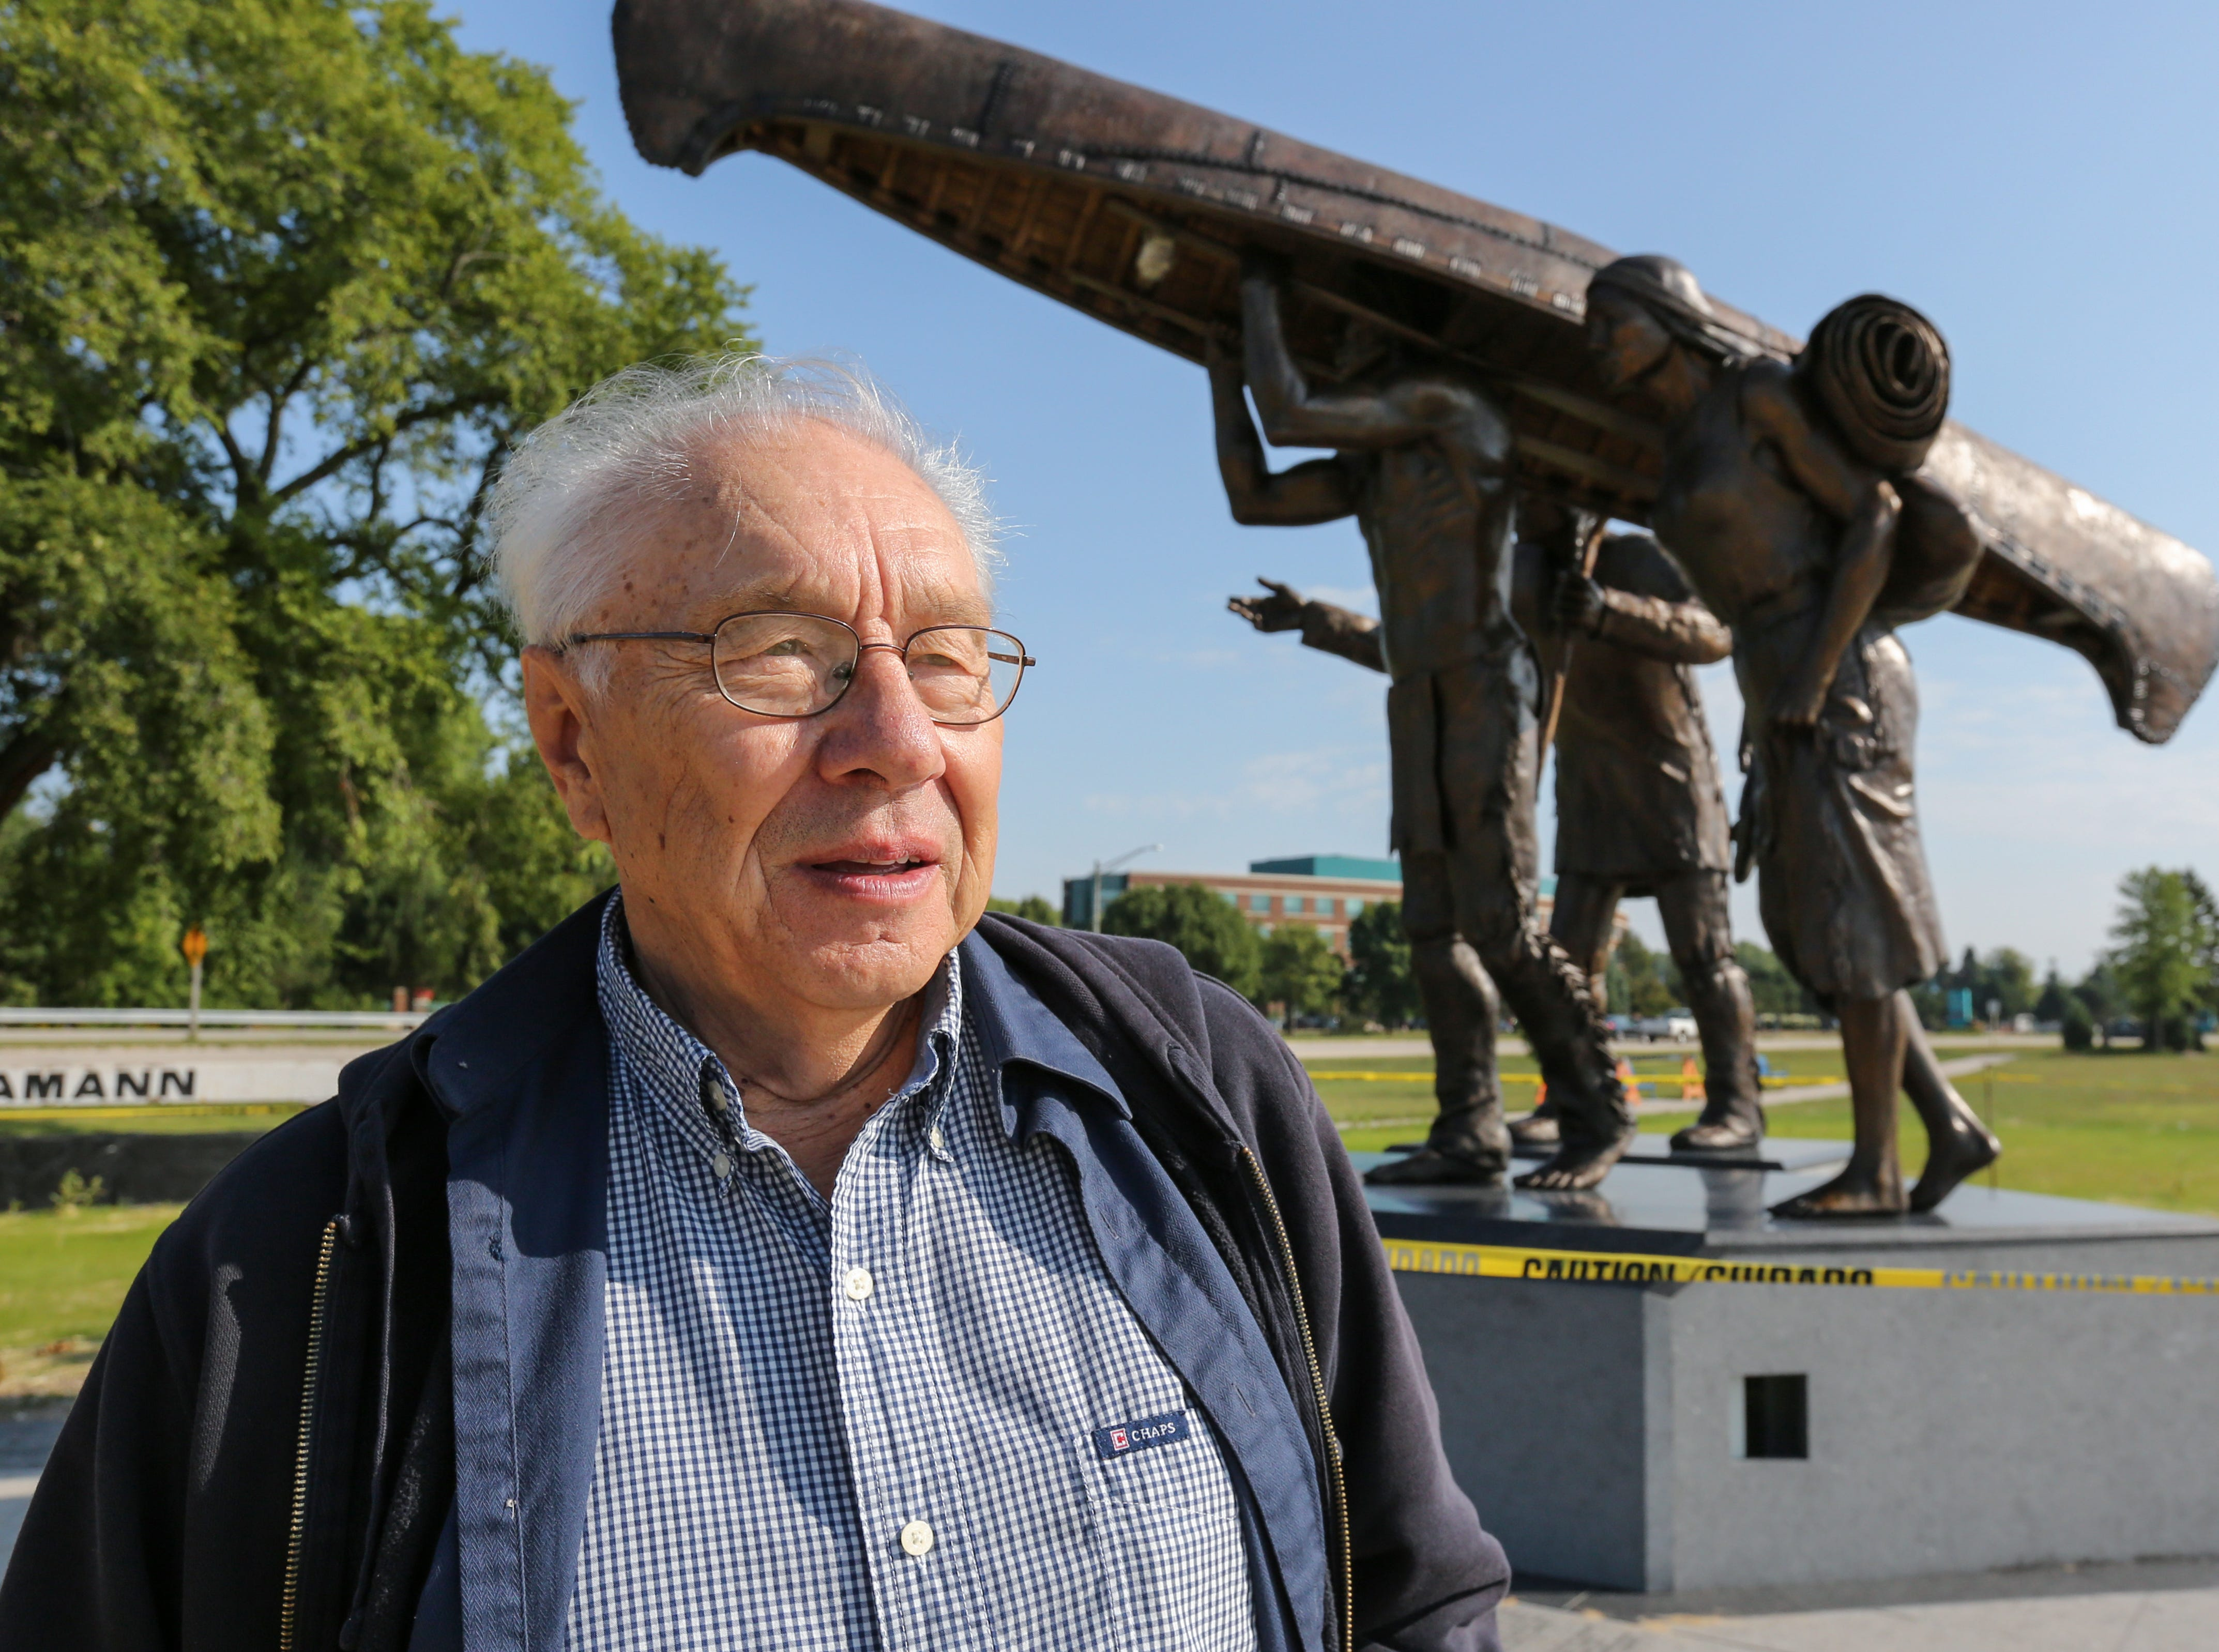 """R.T. """"Skip"""" Wallen stands near the newly installed """"Spirit of the Rivers"""" monument Friday, August 31, 2018, in Two Rivers, Wis. Josh Clark/USA TODAY NETWORK-Wisconsin"""